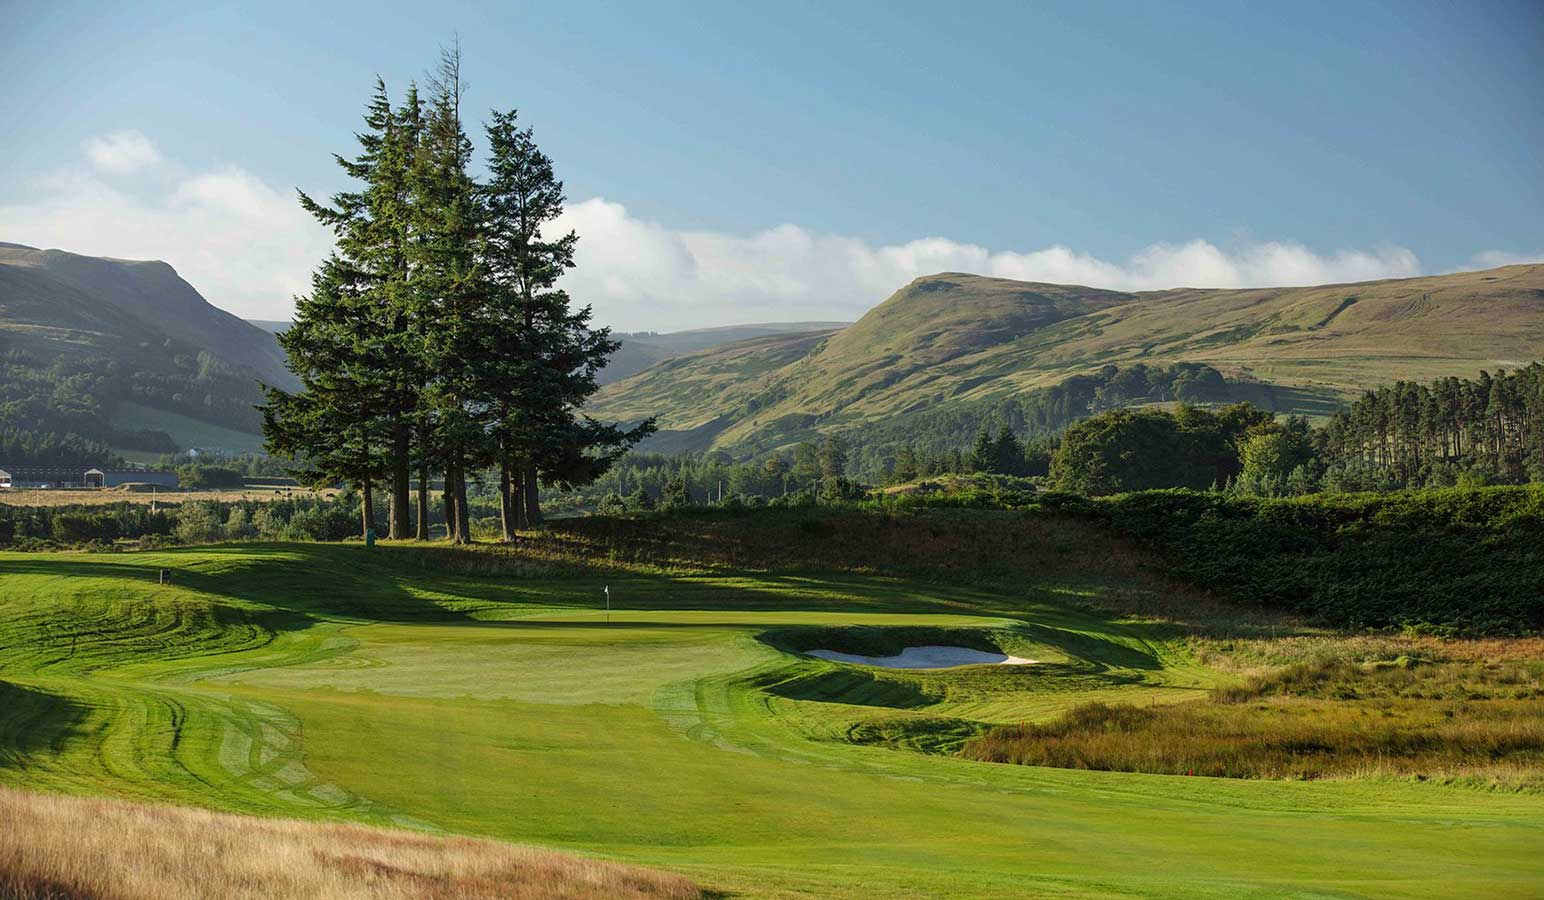 A view of the Gleneagles golf courses on an autumnal day with the Ochil Hills in the background